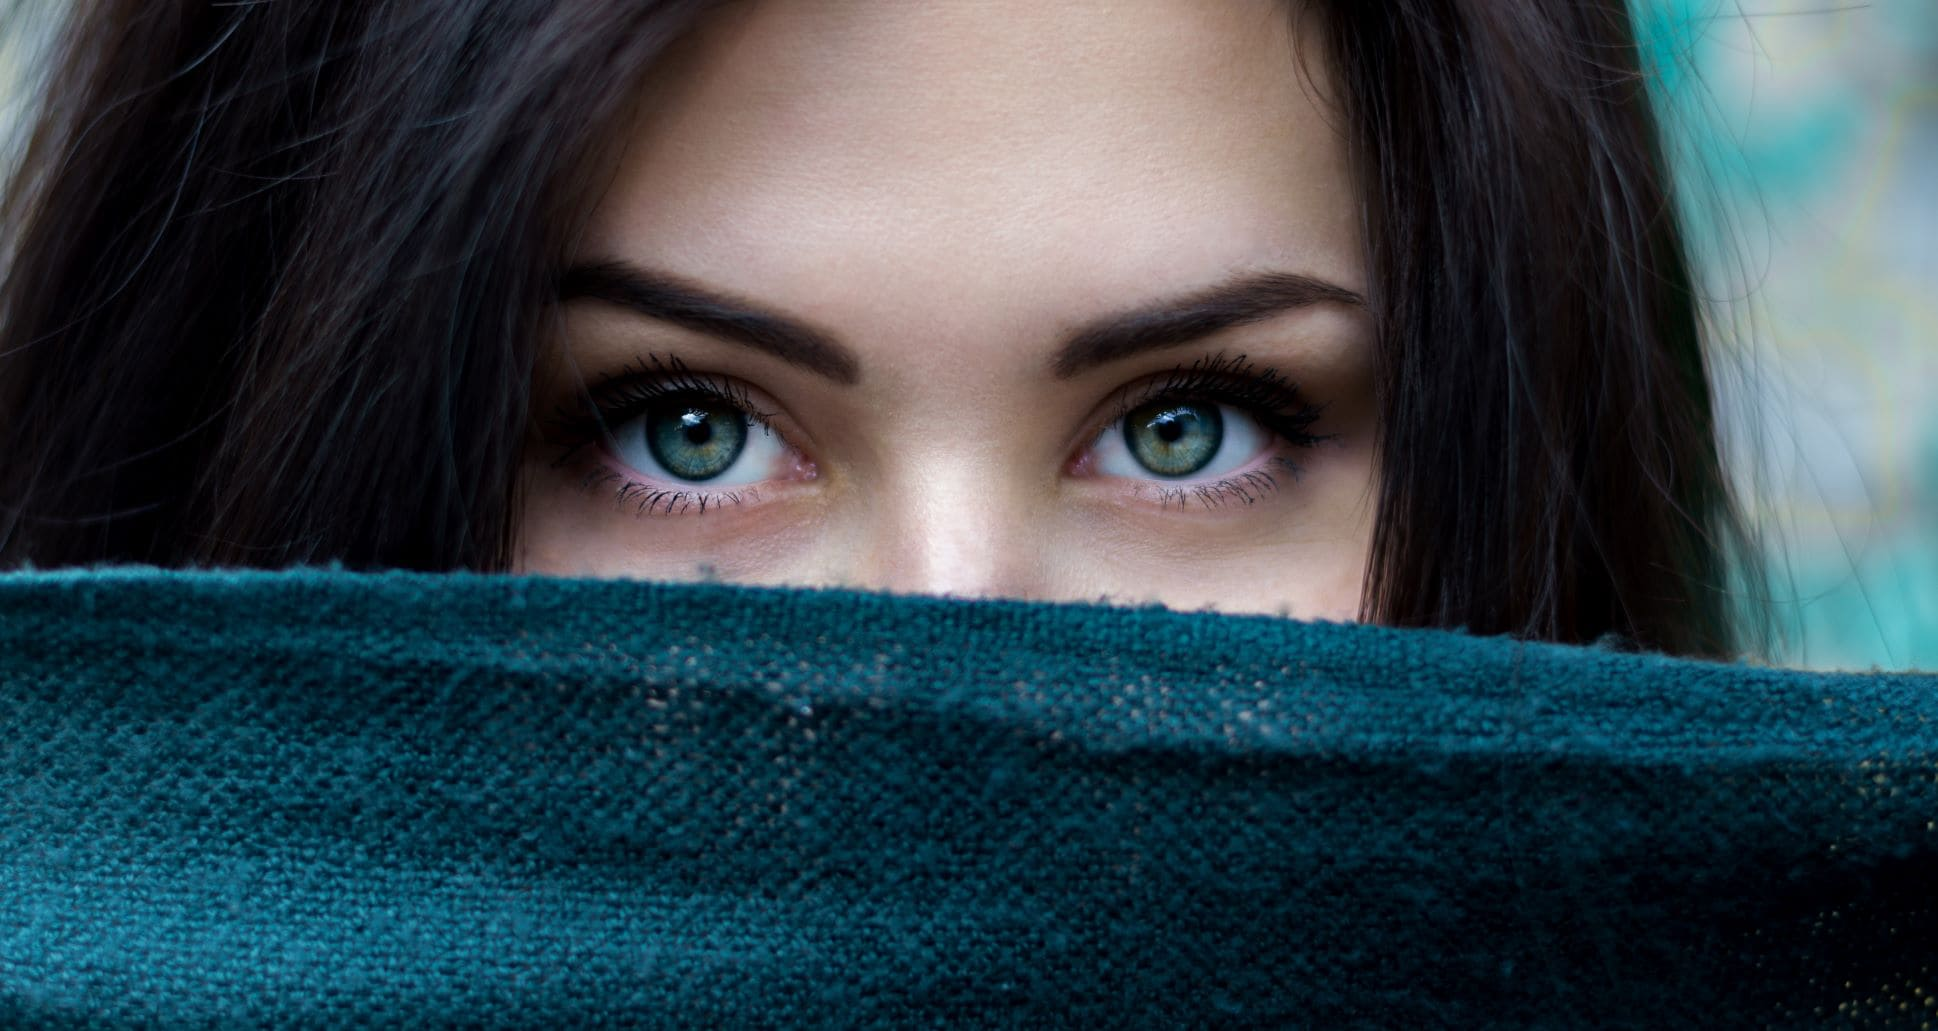 Do you have impostor syndrome, or is it just me? Read to find out more.